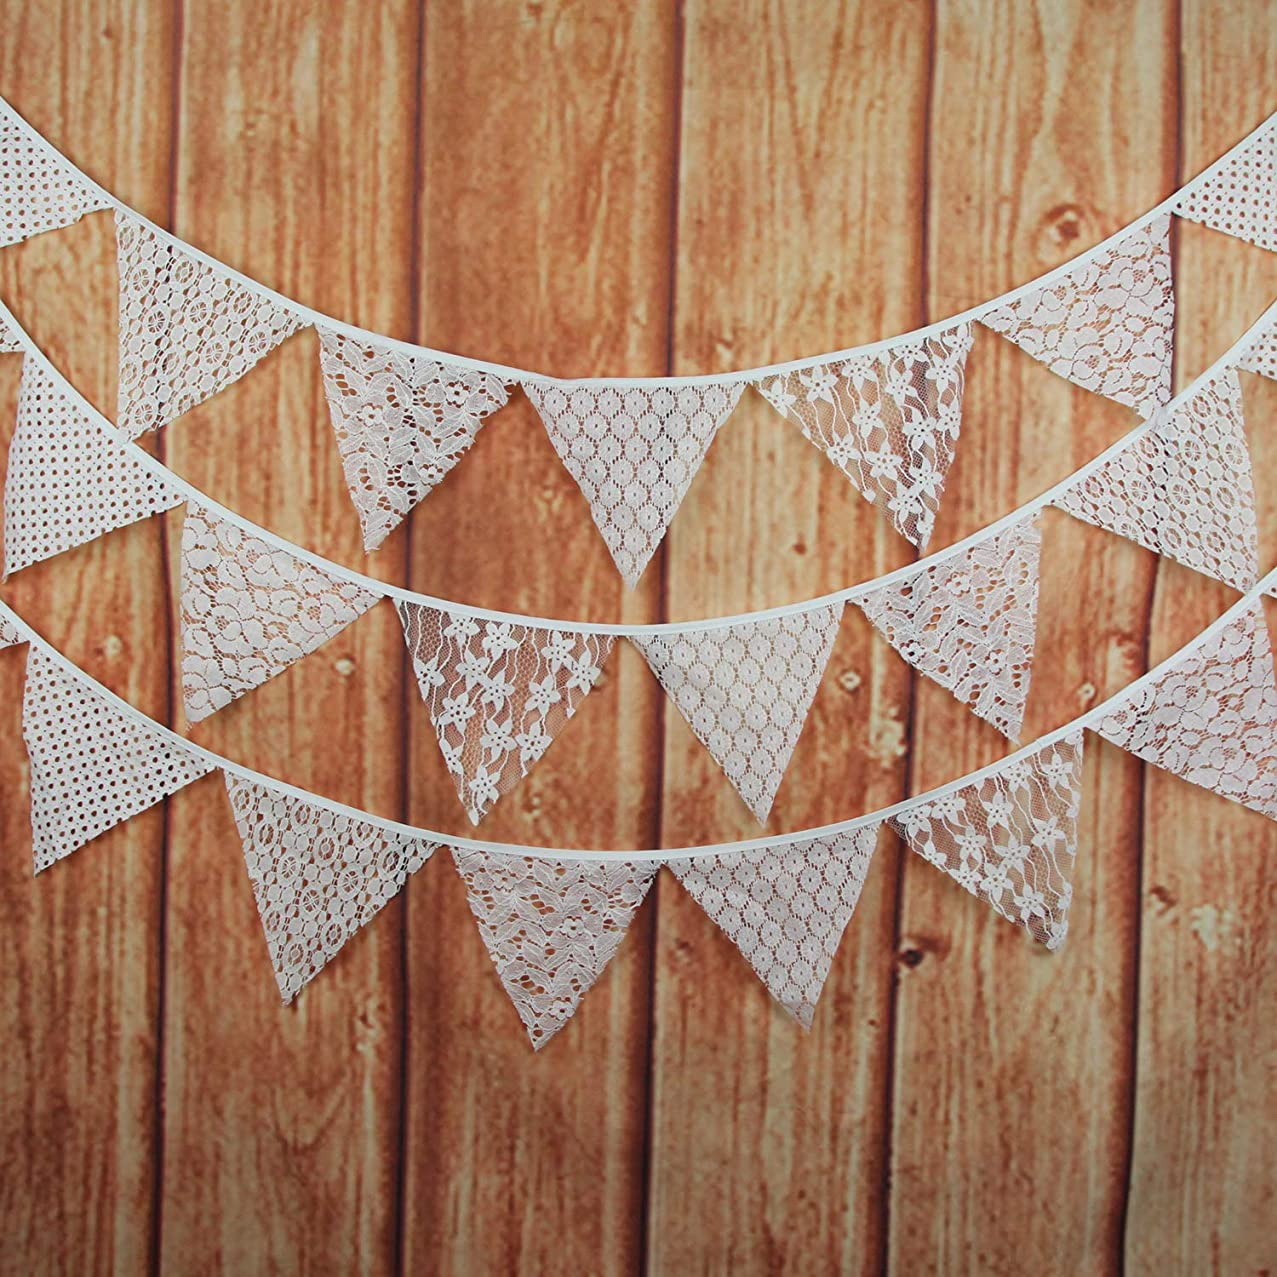 INFEI 3.2M/10.5Ft Mixed White Floral Lace Fabric Flags Bunting Banner Garlands for Wedding, Birthday Party, Outdoor & Home Decoration (Off-White)